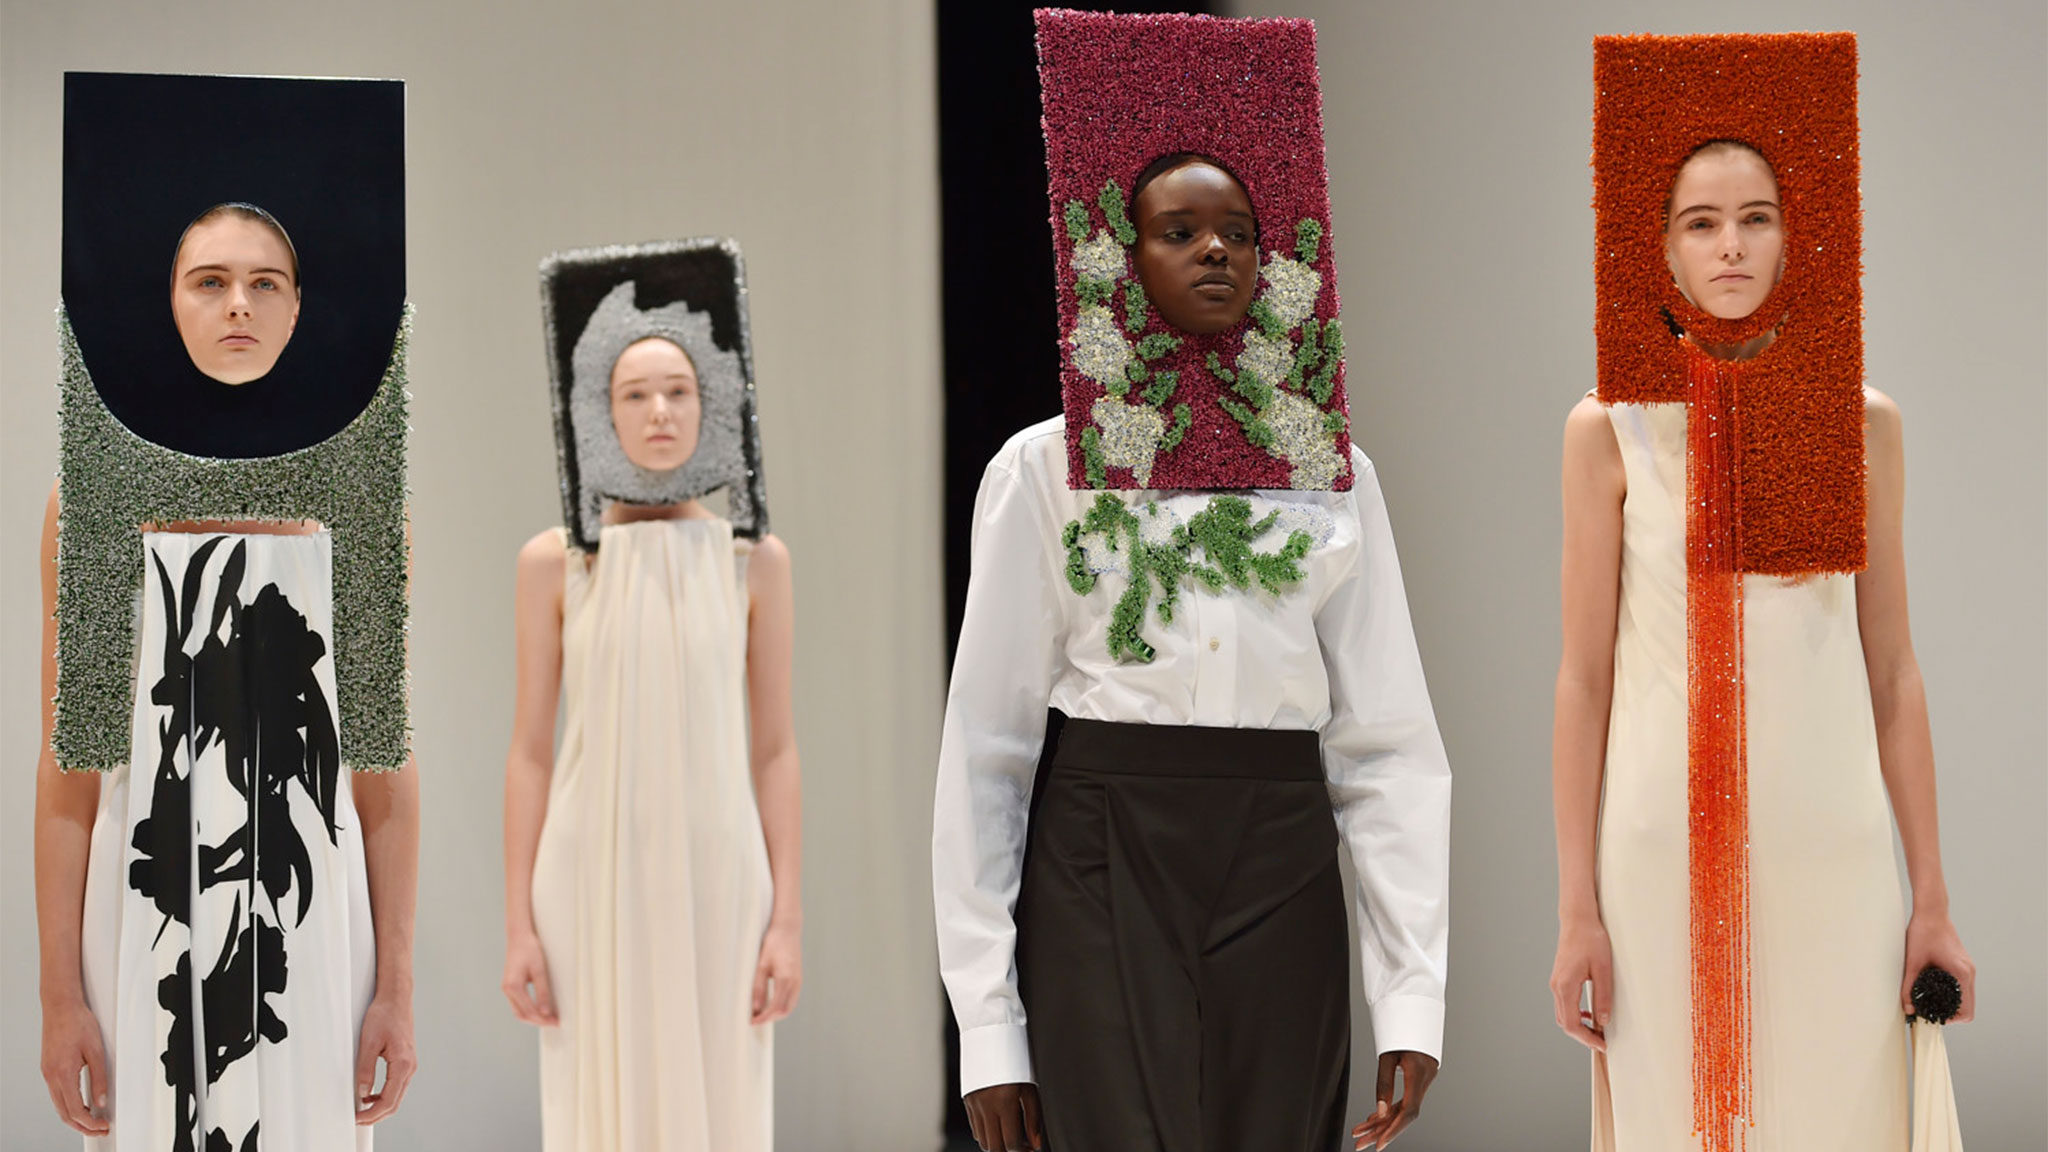 Slow down: Hussein Chalayan despairs of the digital age ...